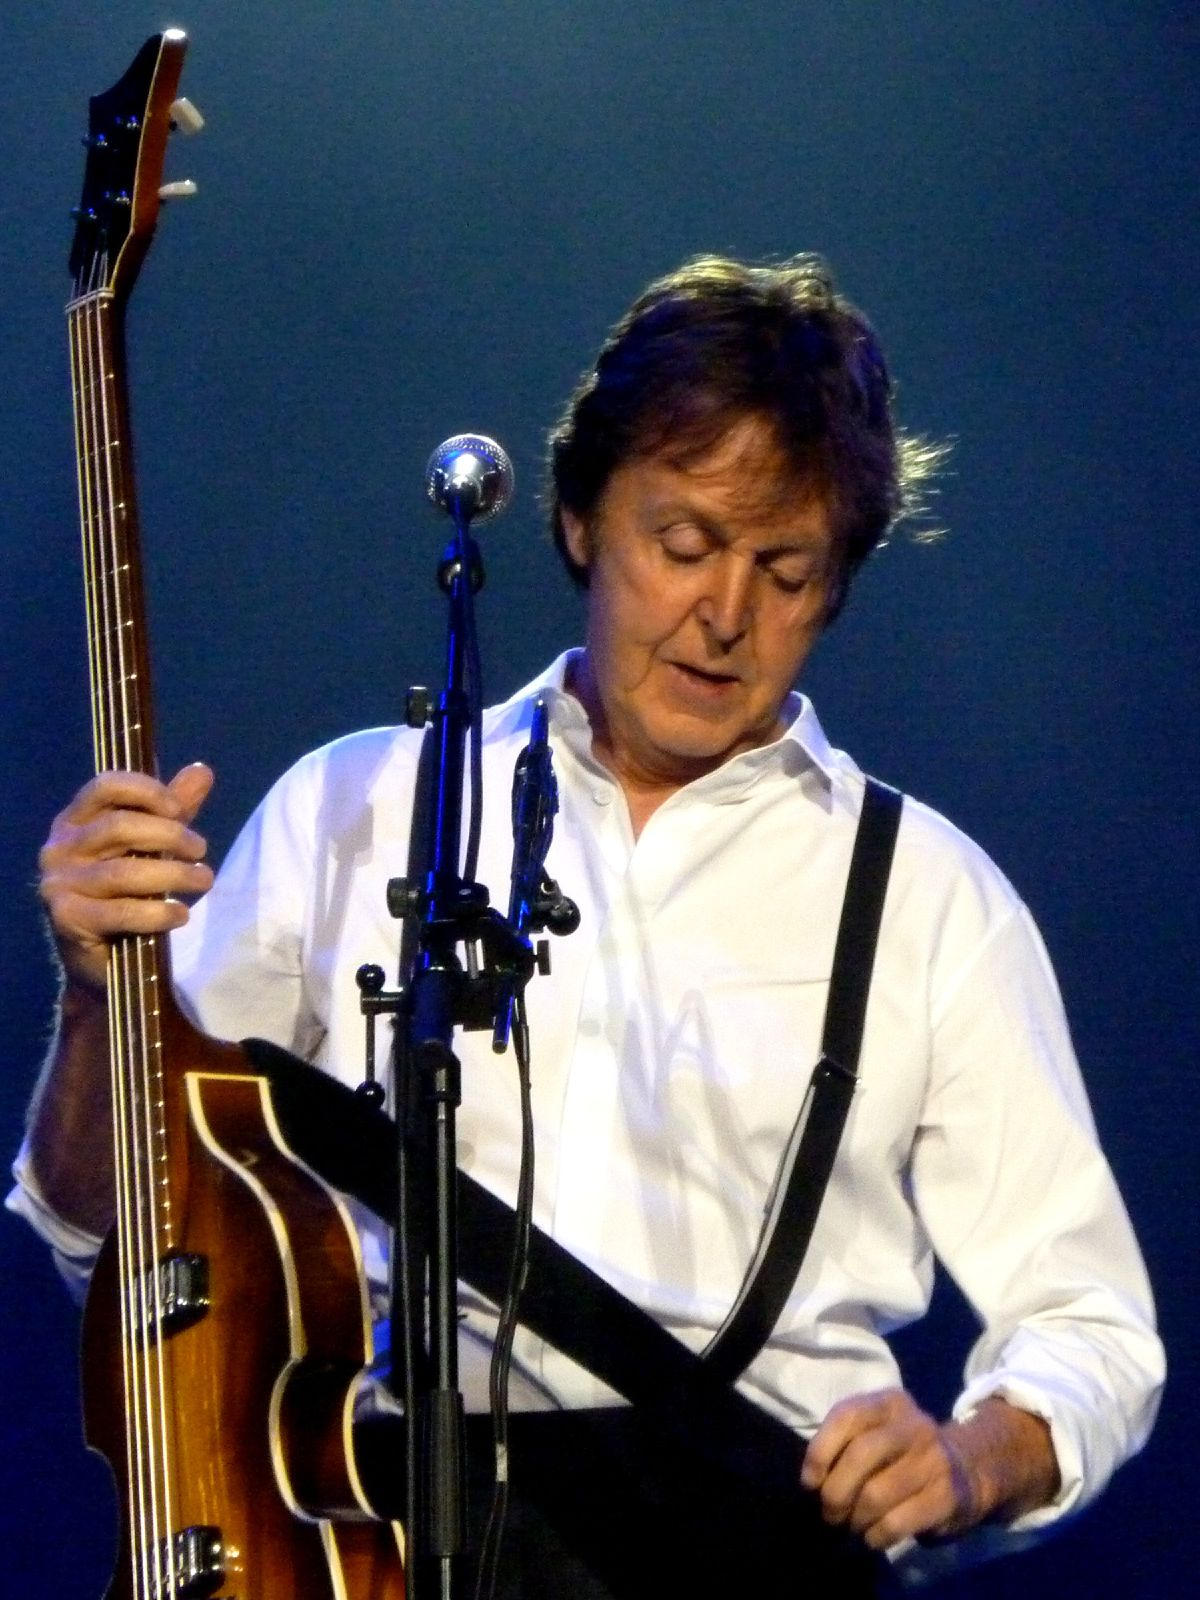 FilePaul McCartney In Dublin 2010 B